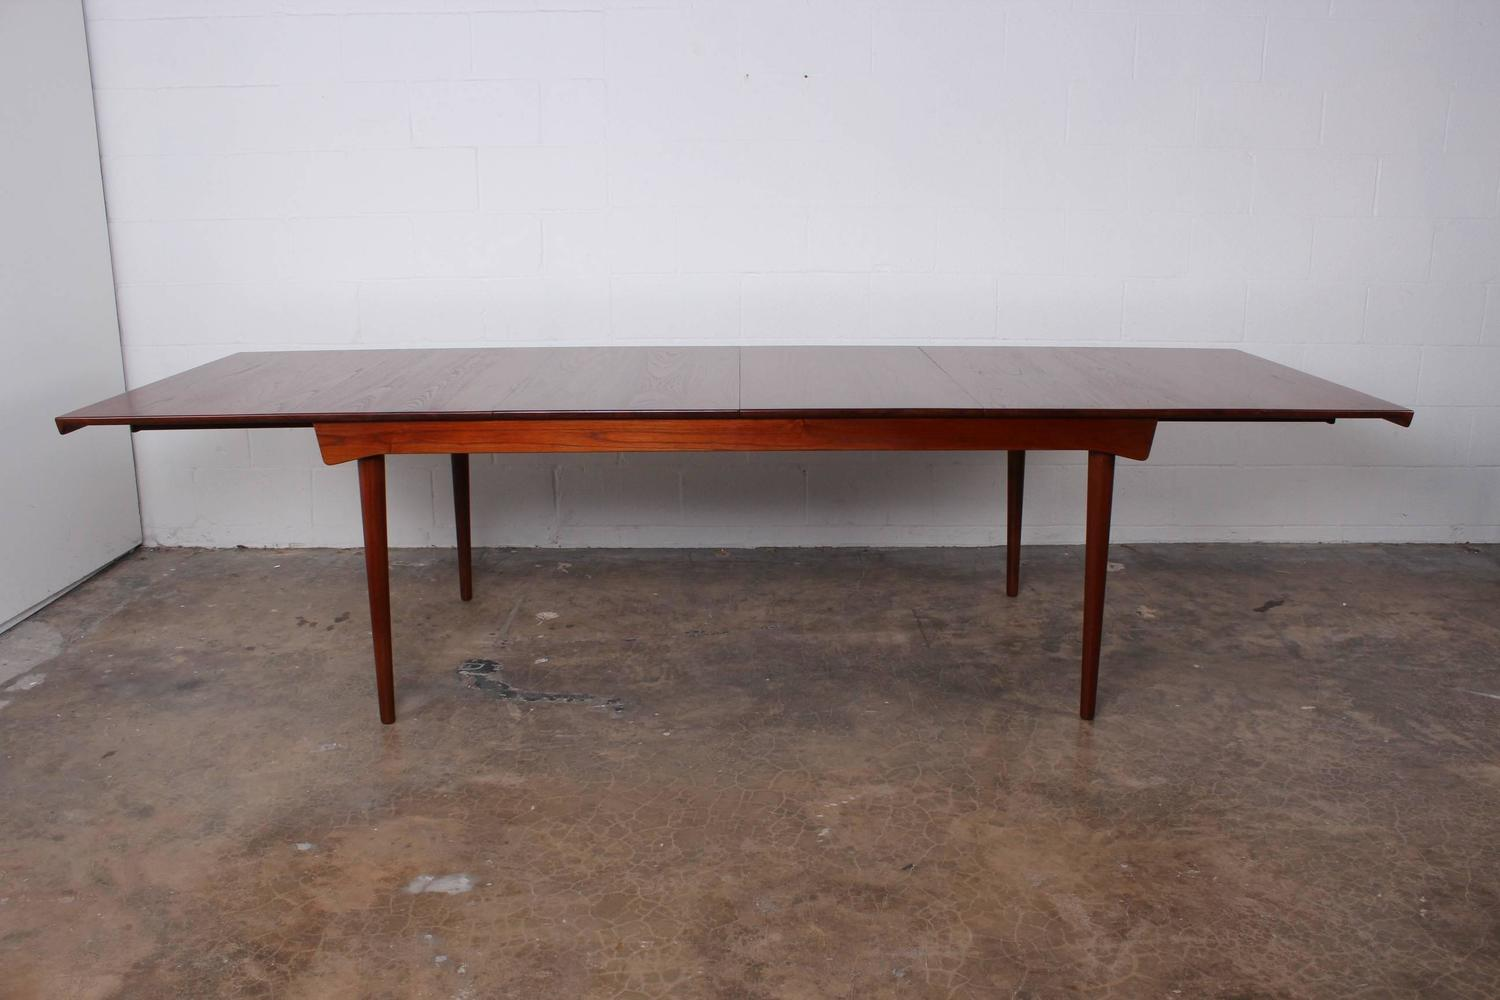 Solid teak dining table designed by finn juhl for sale at for 10 person dining table for sale